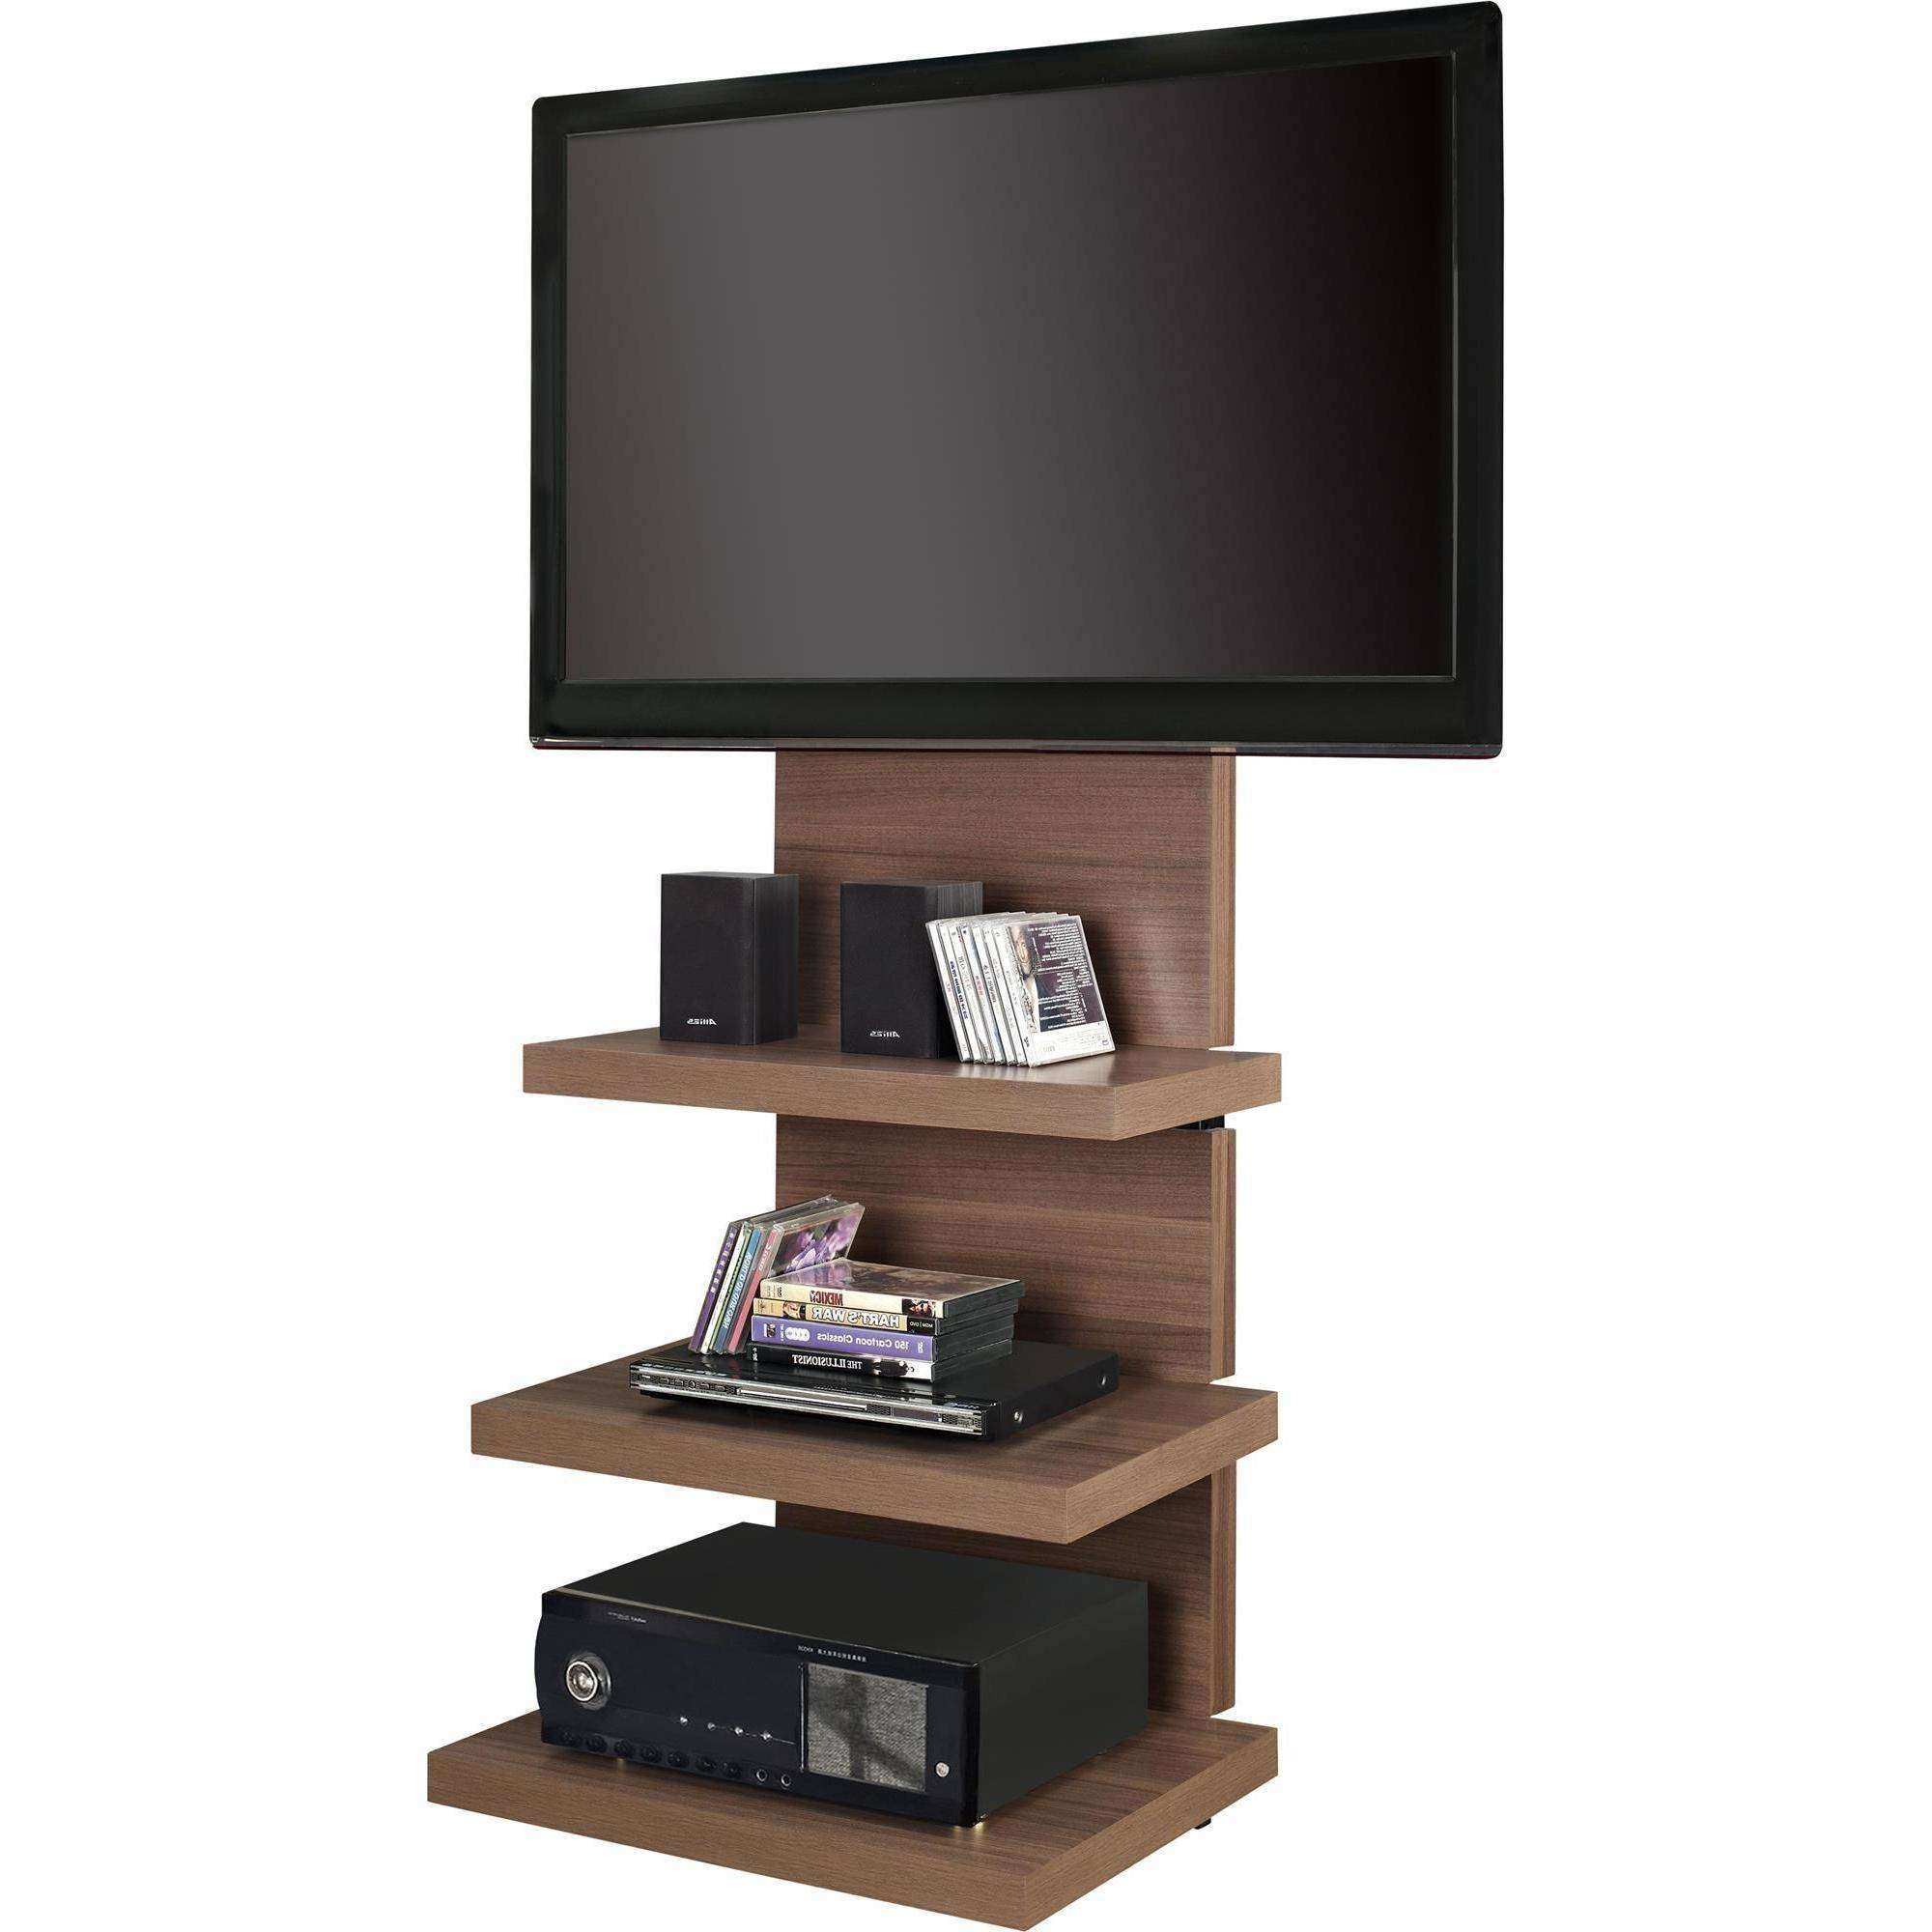 Ameriwood Home Elevation Altramount Tv Stand For Tvs Up To 60 Regarding Walnut Tv Stands For Flat Screens (View 6 of 20)